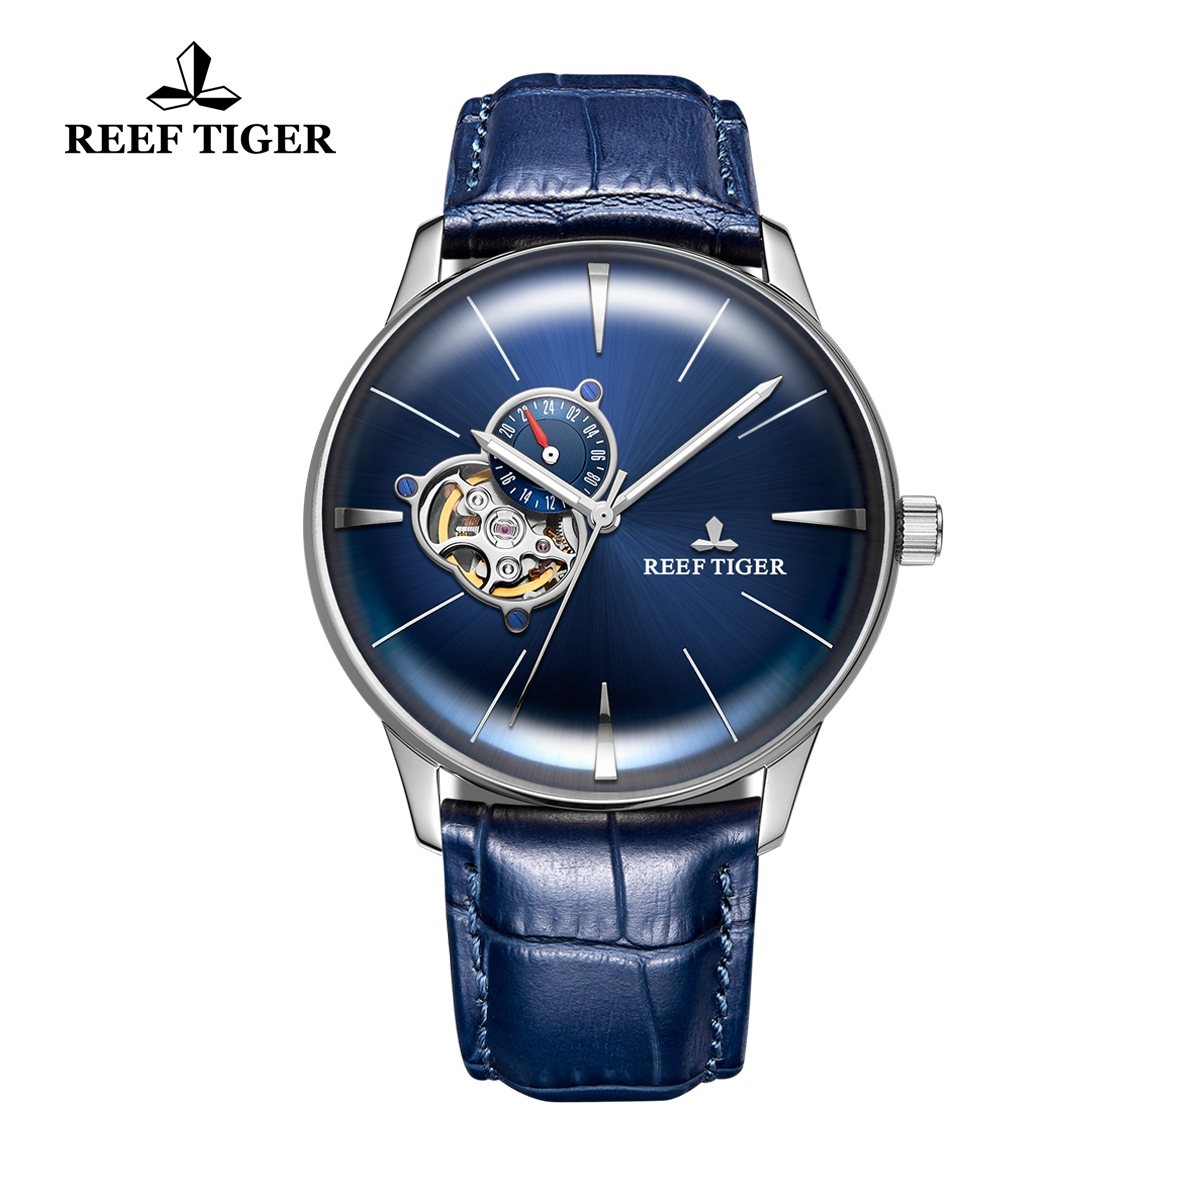 Reef Tiger Classic Glory Men's Blue Dial Automatic Watch Calfskin Leather Strap RGA8239-YLL